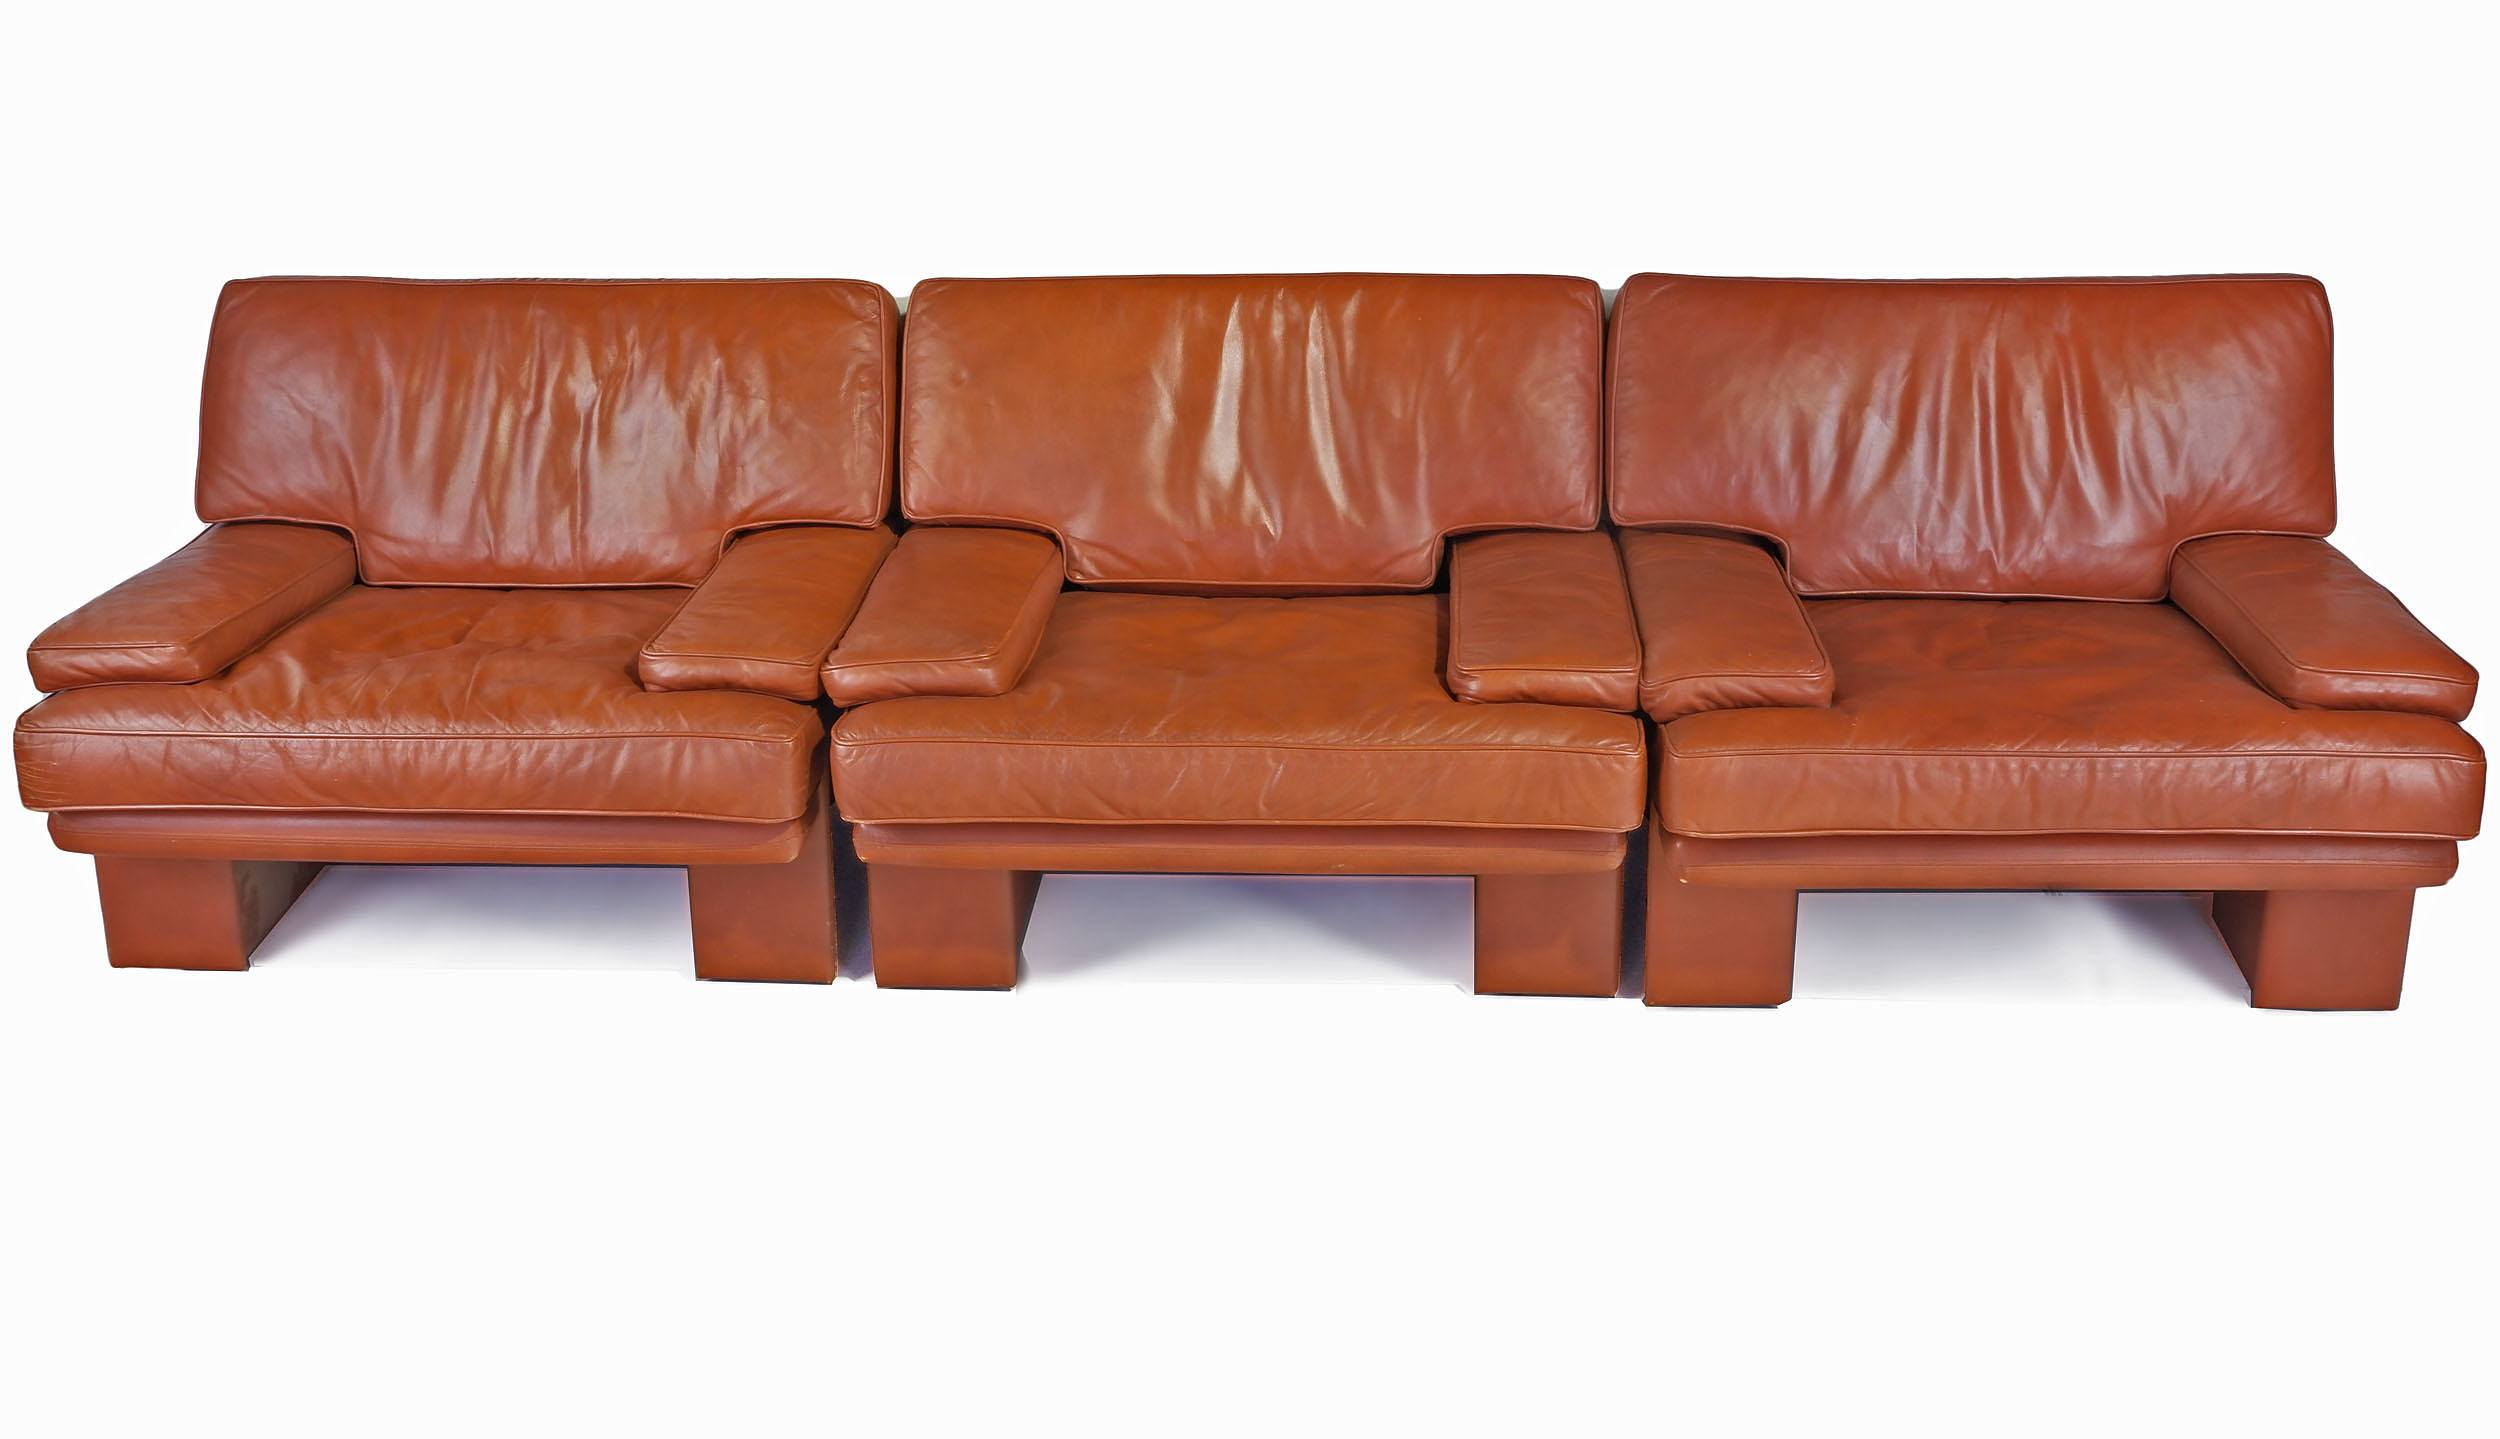 'Three Piece Tan Leather Commack Lounge Suite in the Style of Mario Bellini'